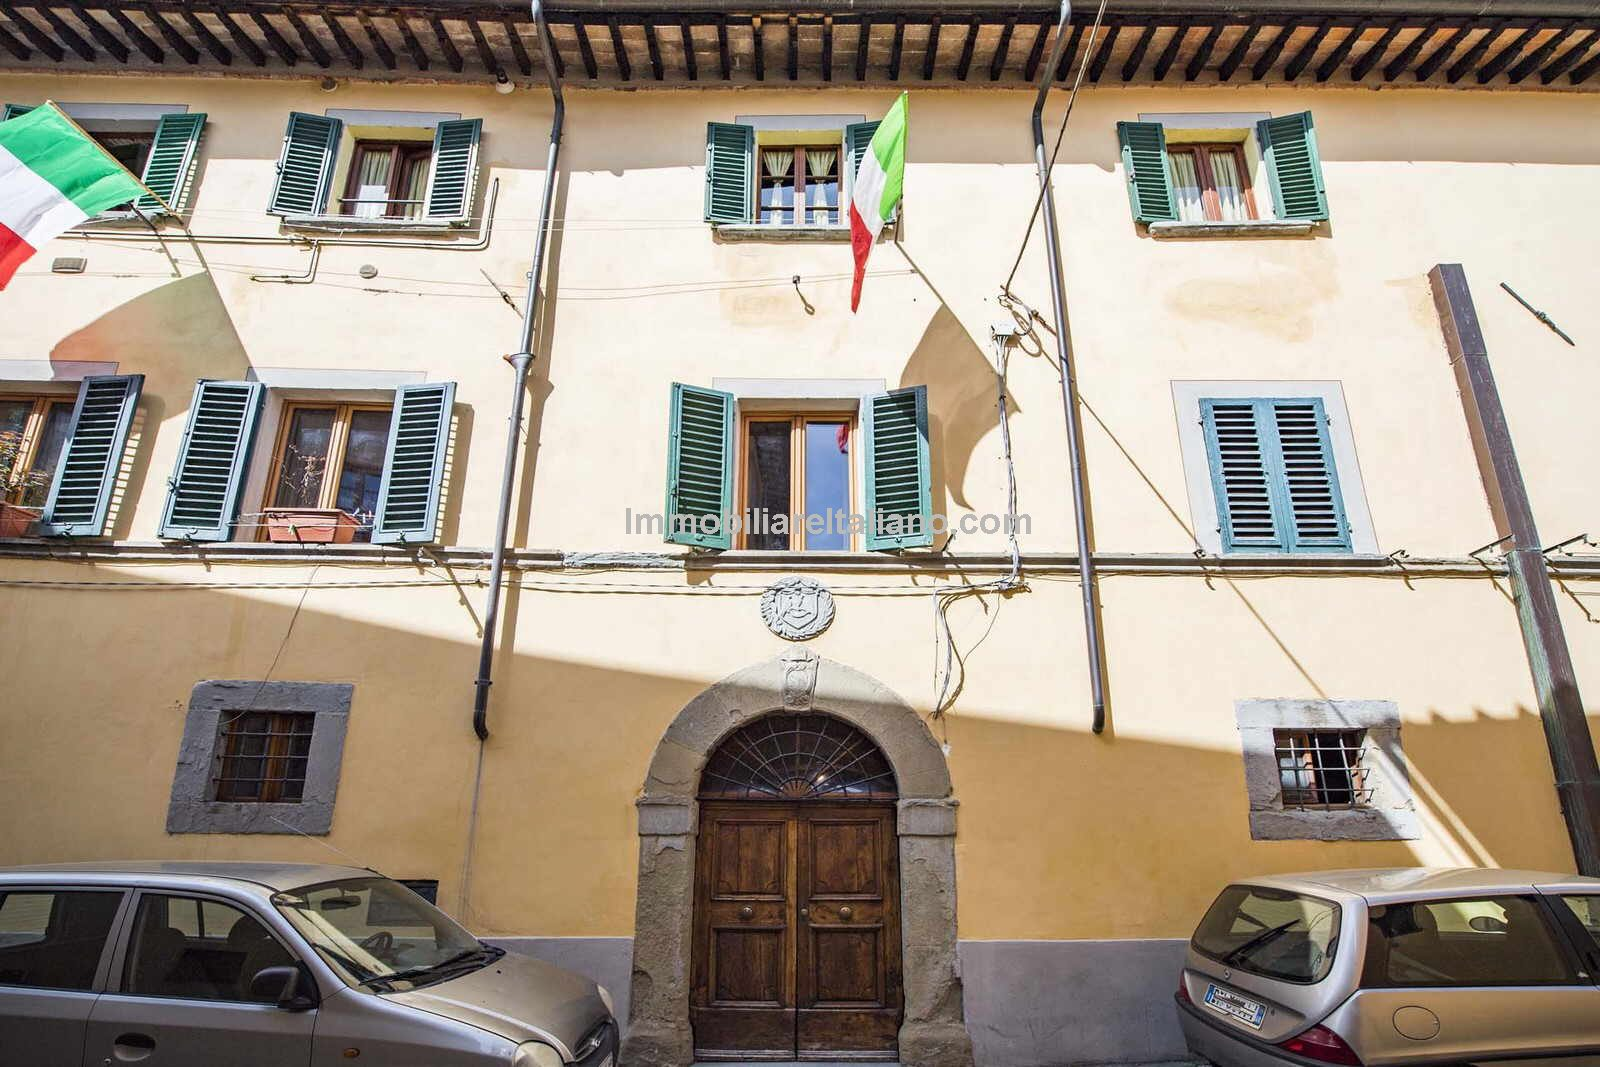 Street view of Sansepolcro Tuscany Italy Apartment